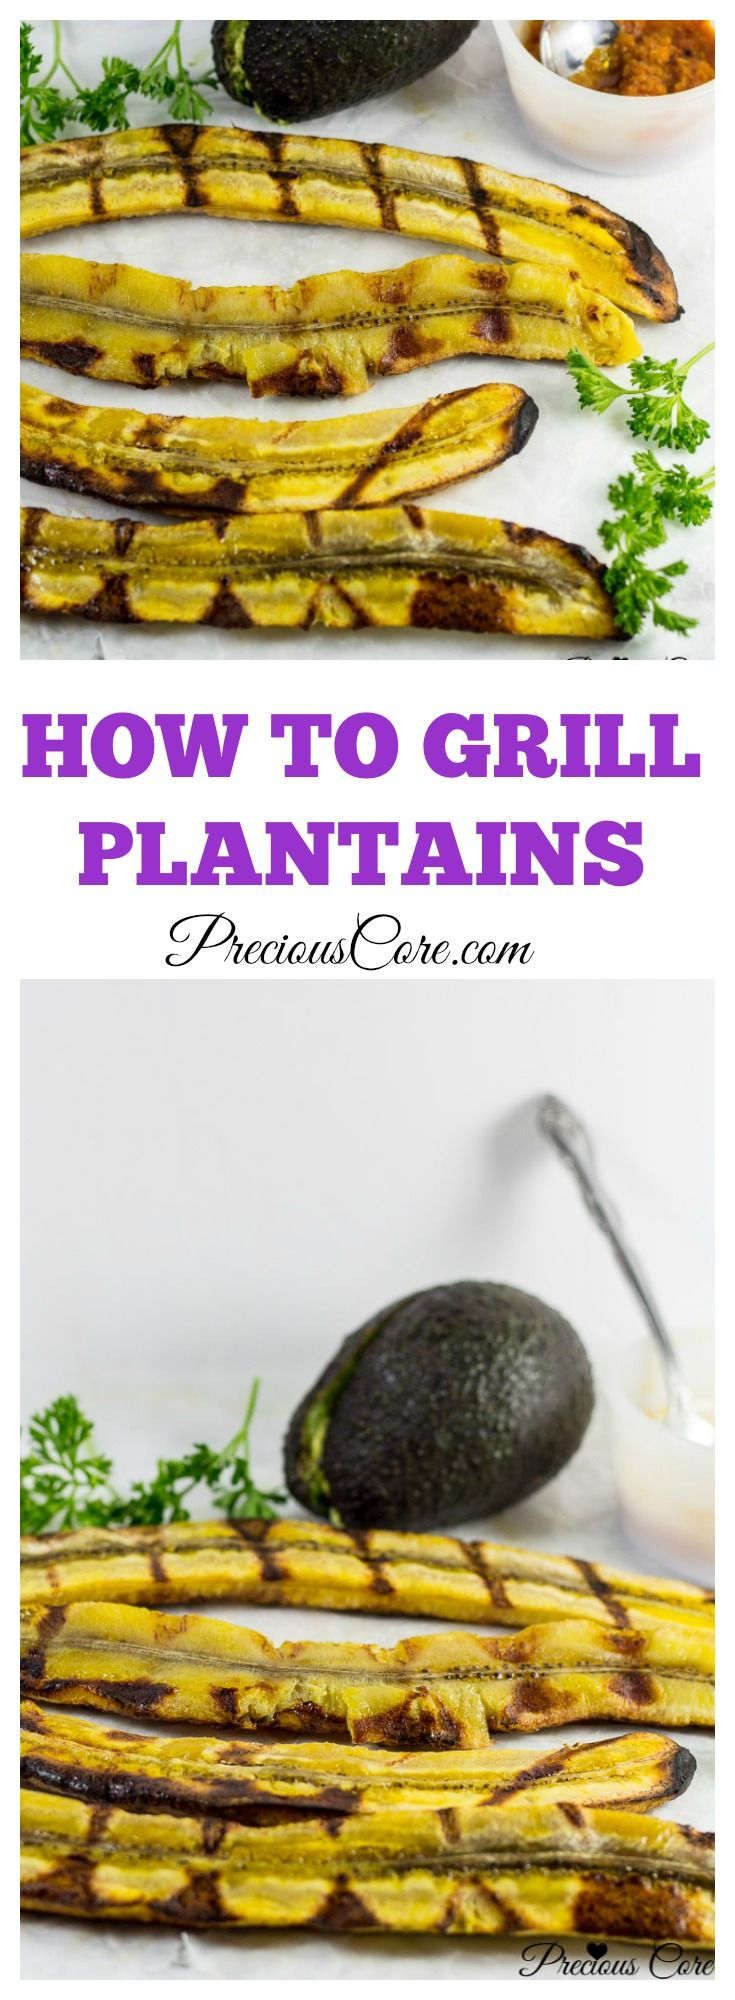 Perfect Grilled plantains - easy recipe